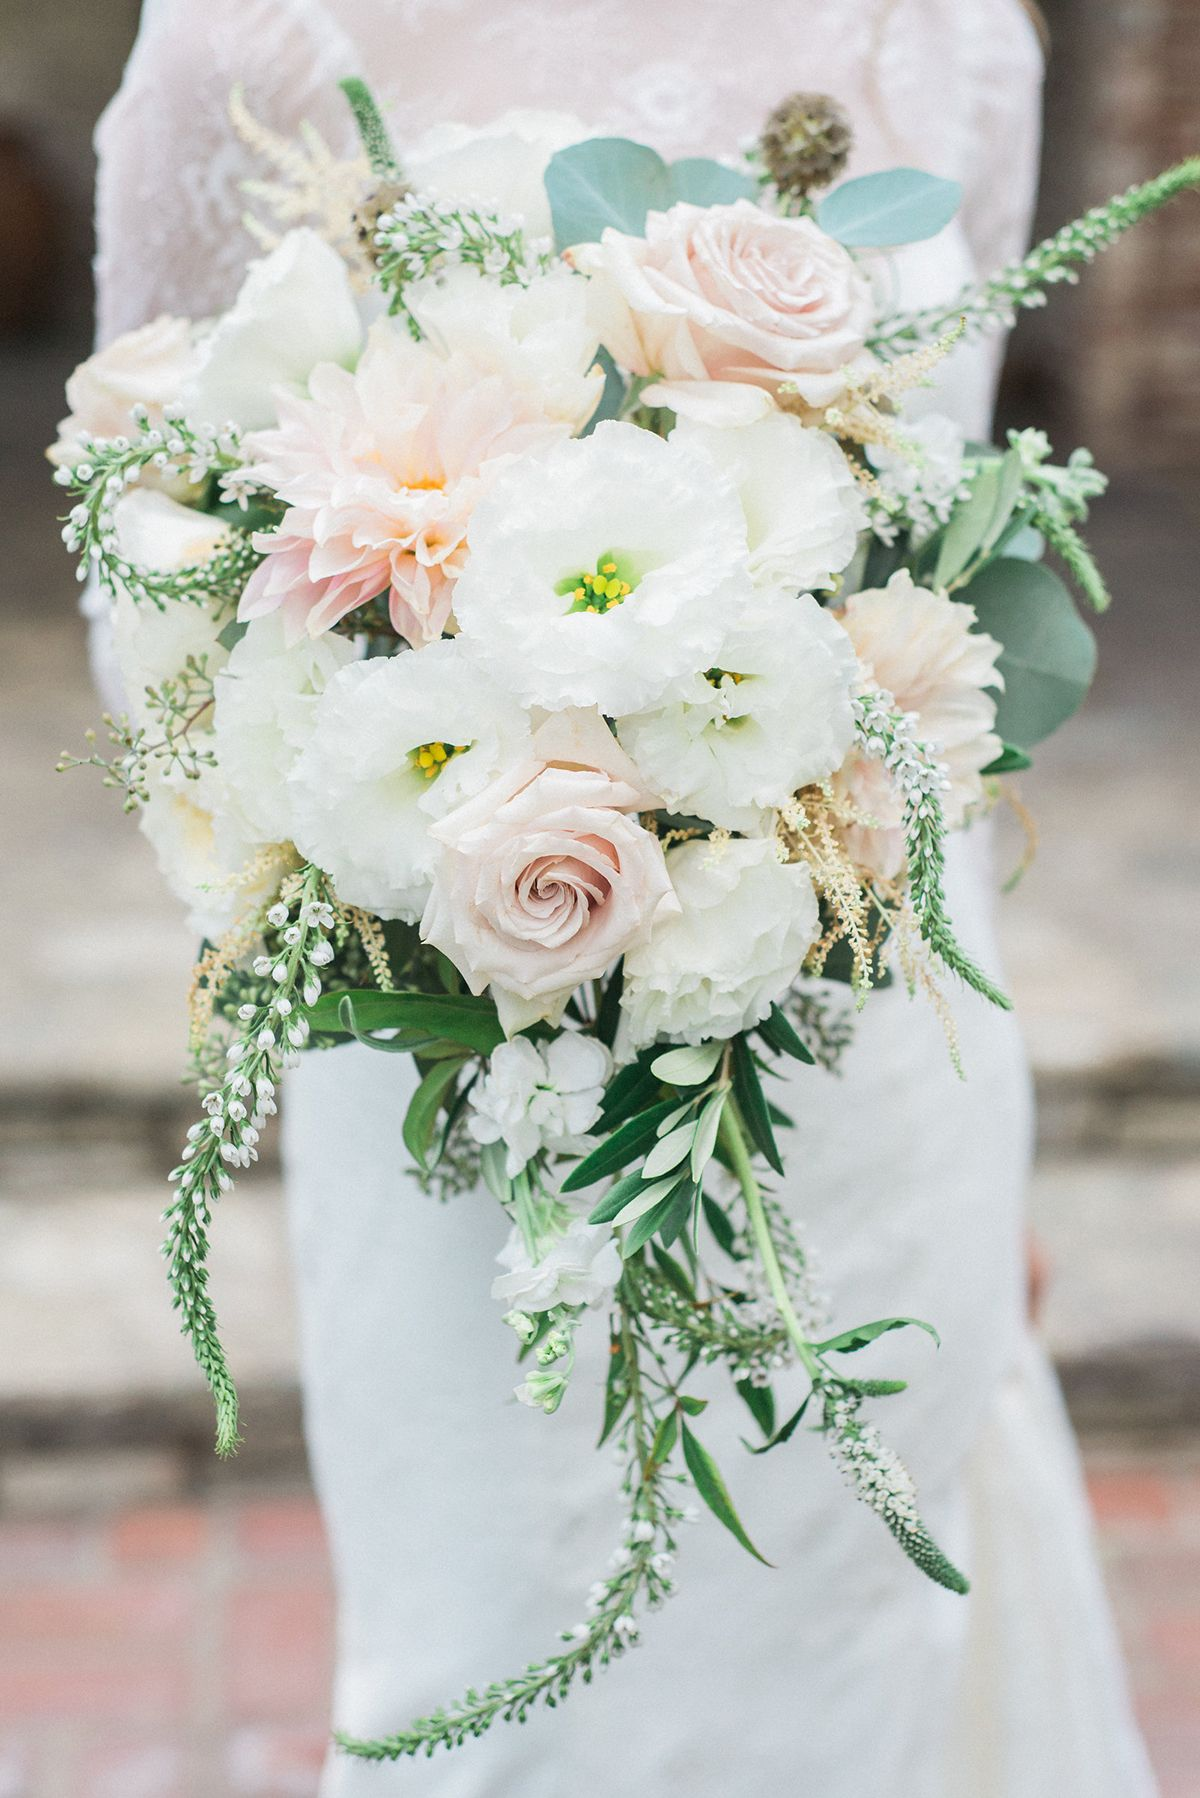 Cascading peach and white wedding bouquet with hints of for Bridal flower bouquets ideas